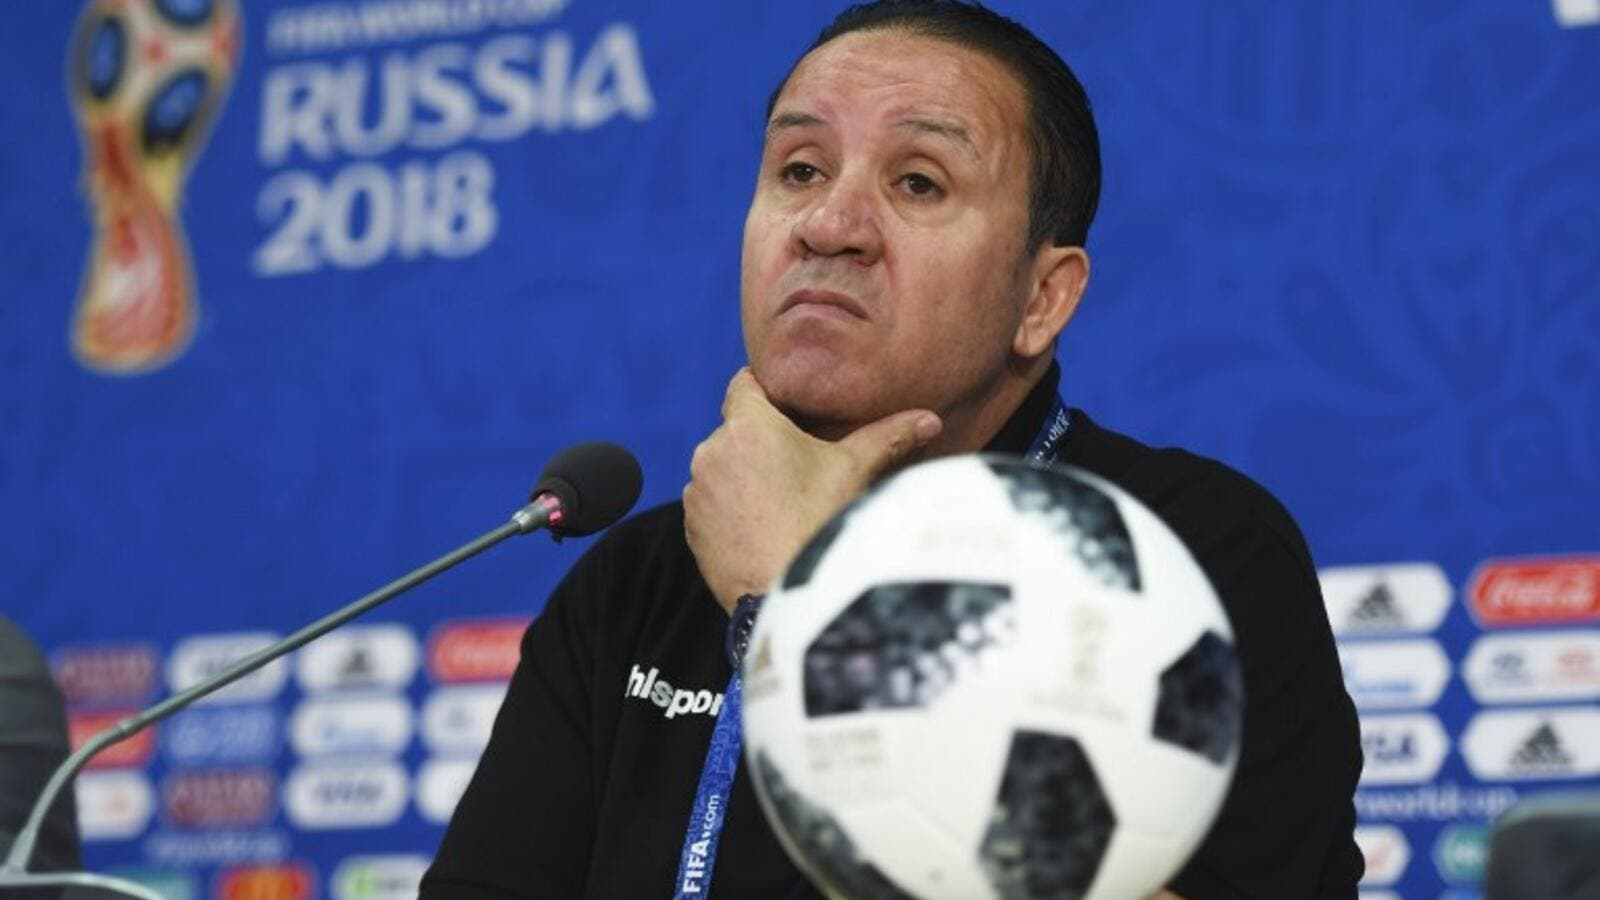 The Tunisian coach talks about his side's early exit from the Fifa World Cup in Russia, and reflects on similar problems in the region